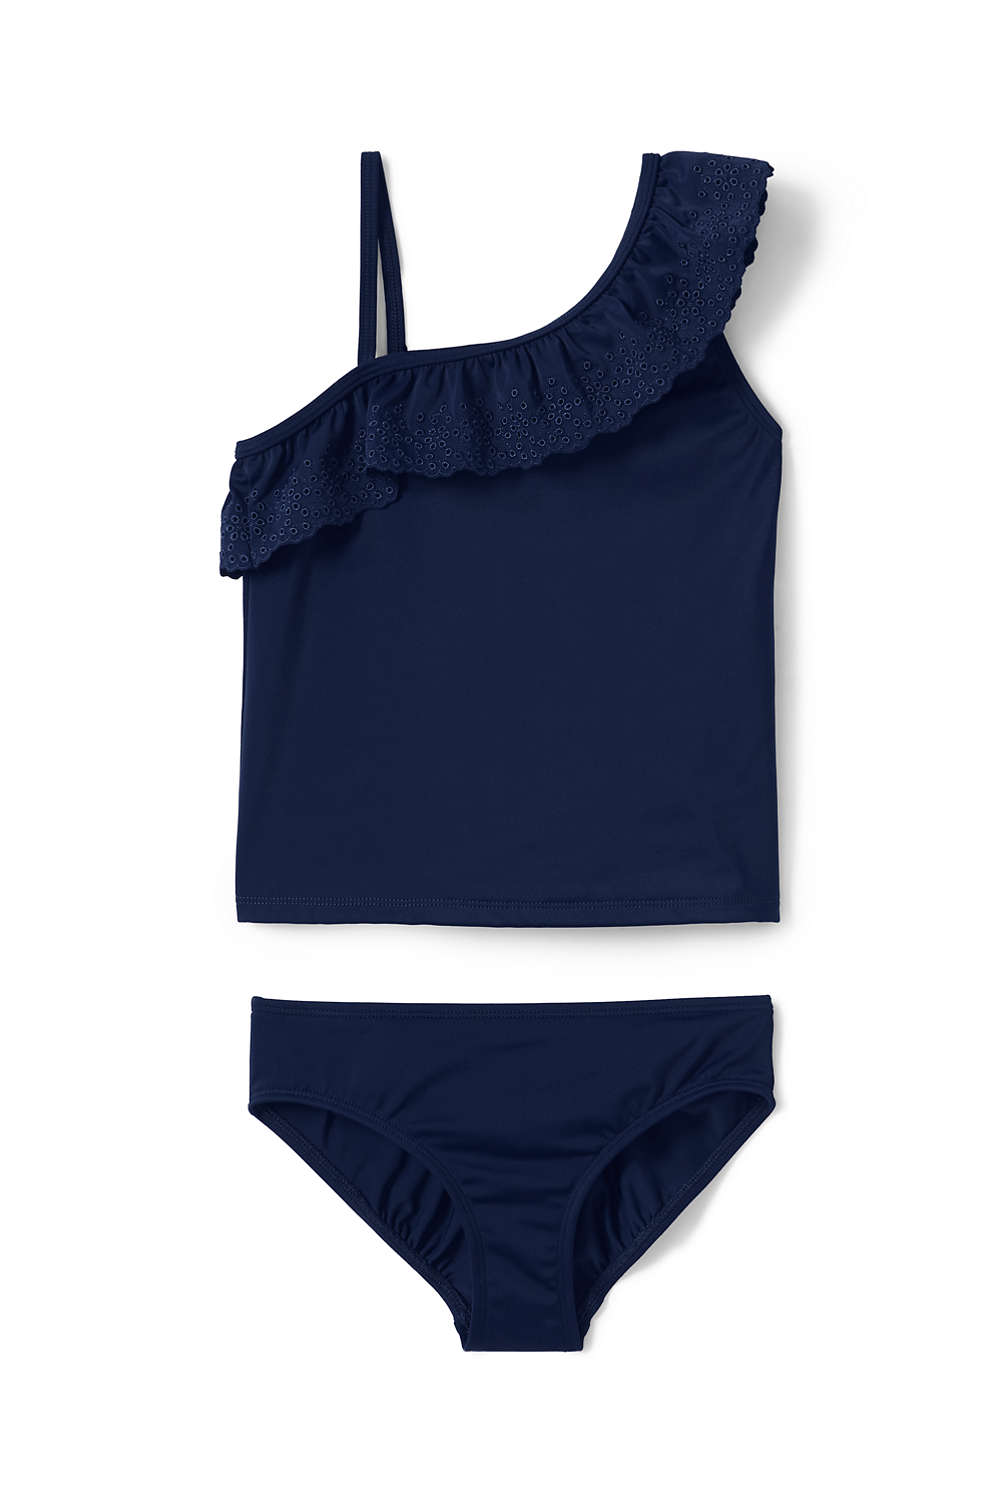 dbcc0feda1eb7 Girls Eyelet Ruffle Tankini Set from Lands' End